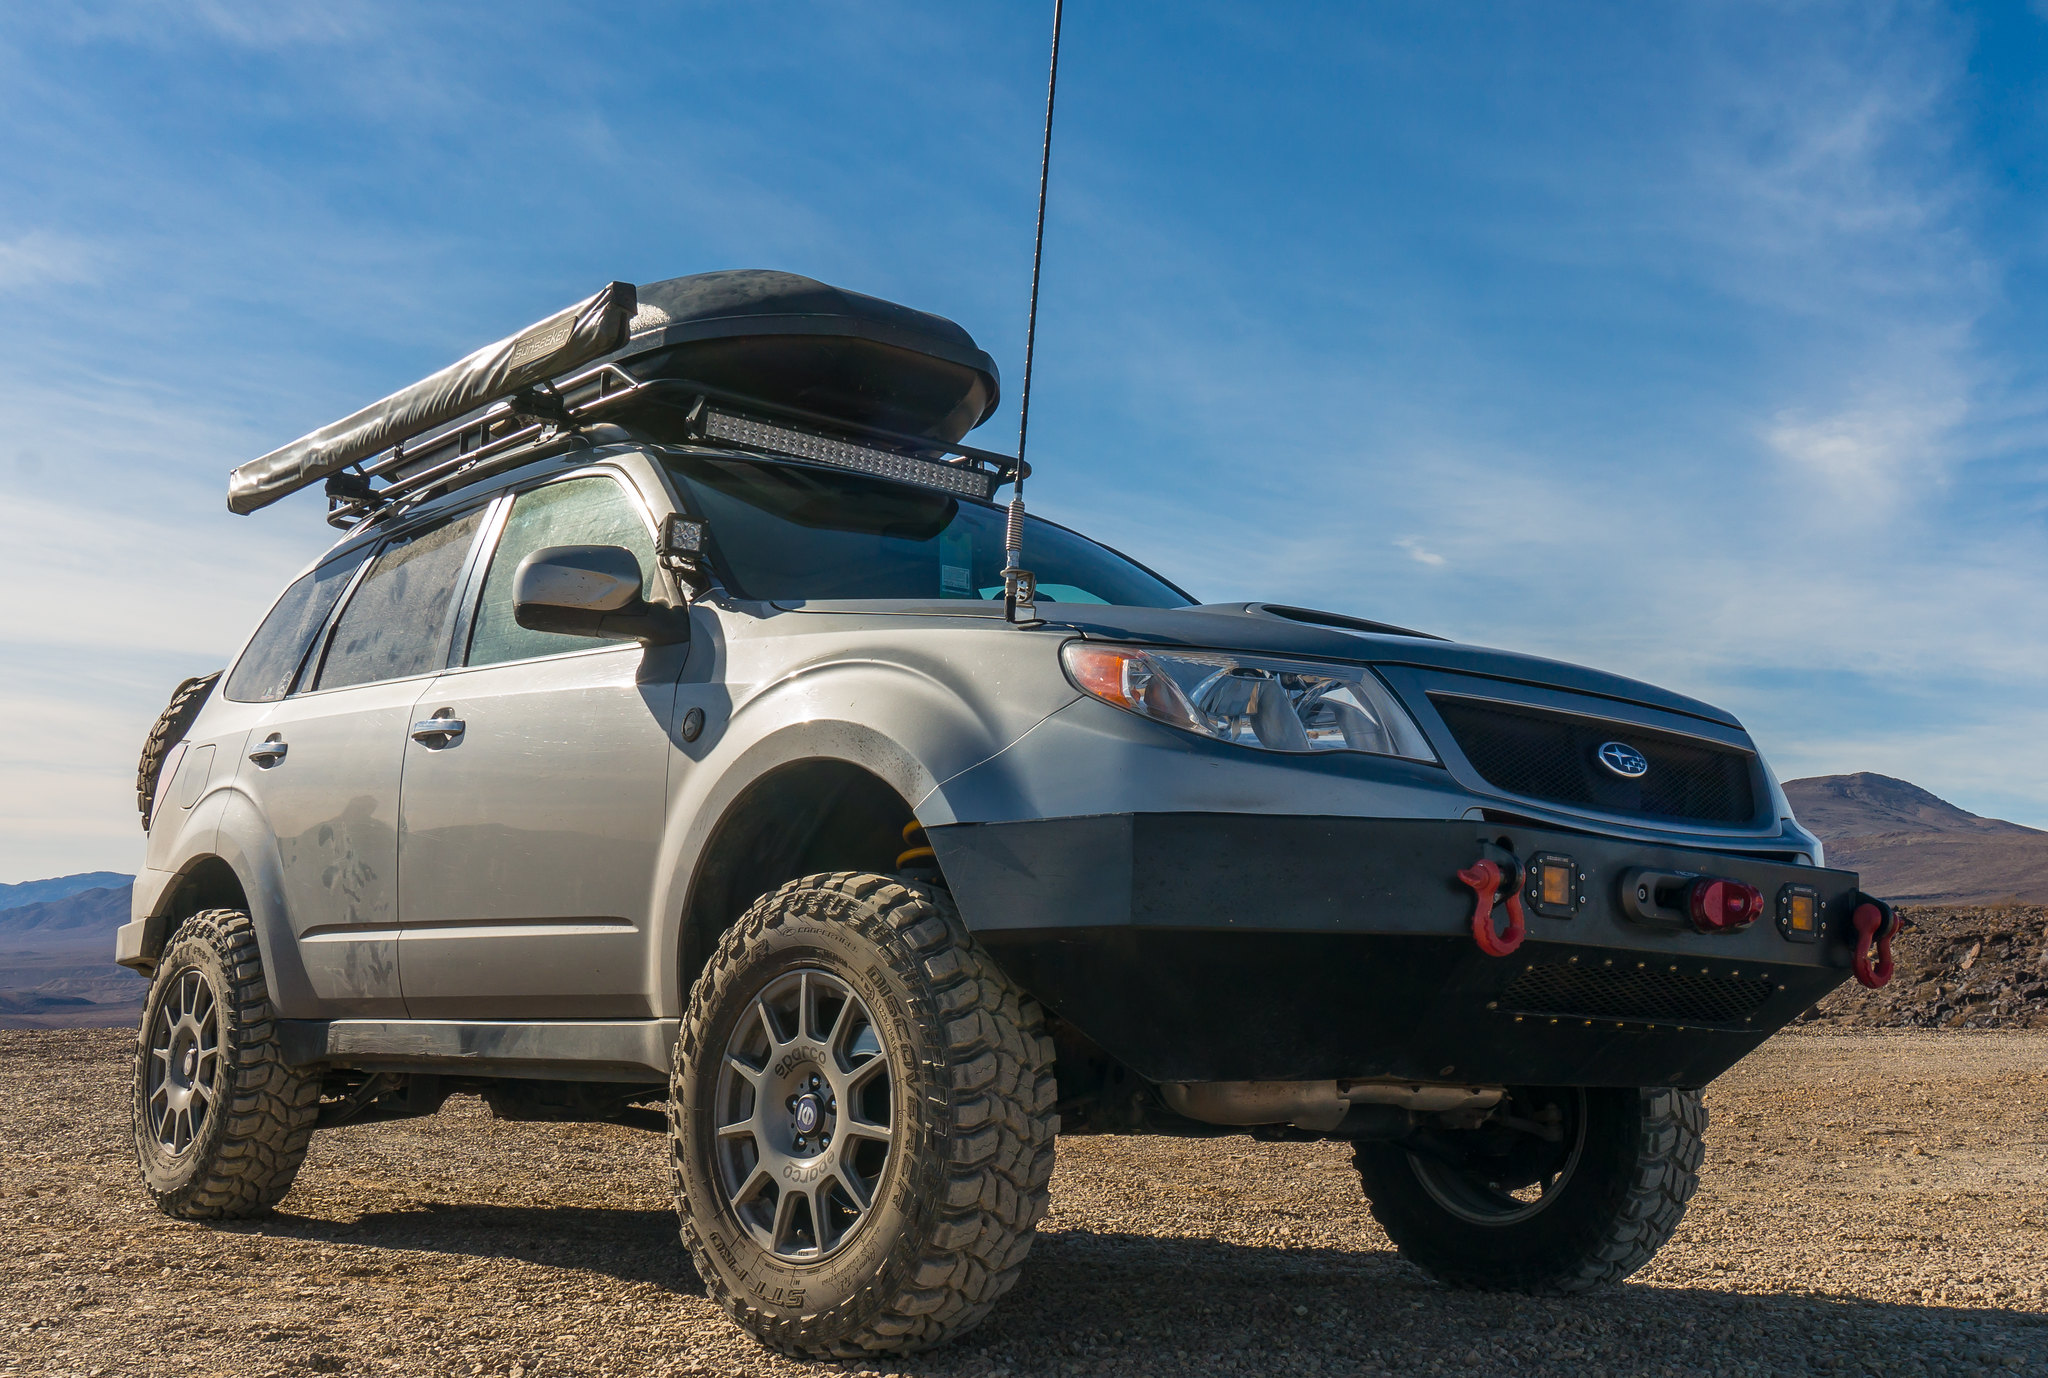 Subaru Forester Owners Forum View Single Post 09 13